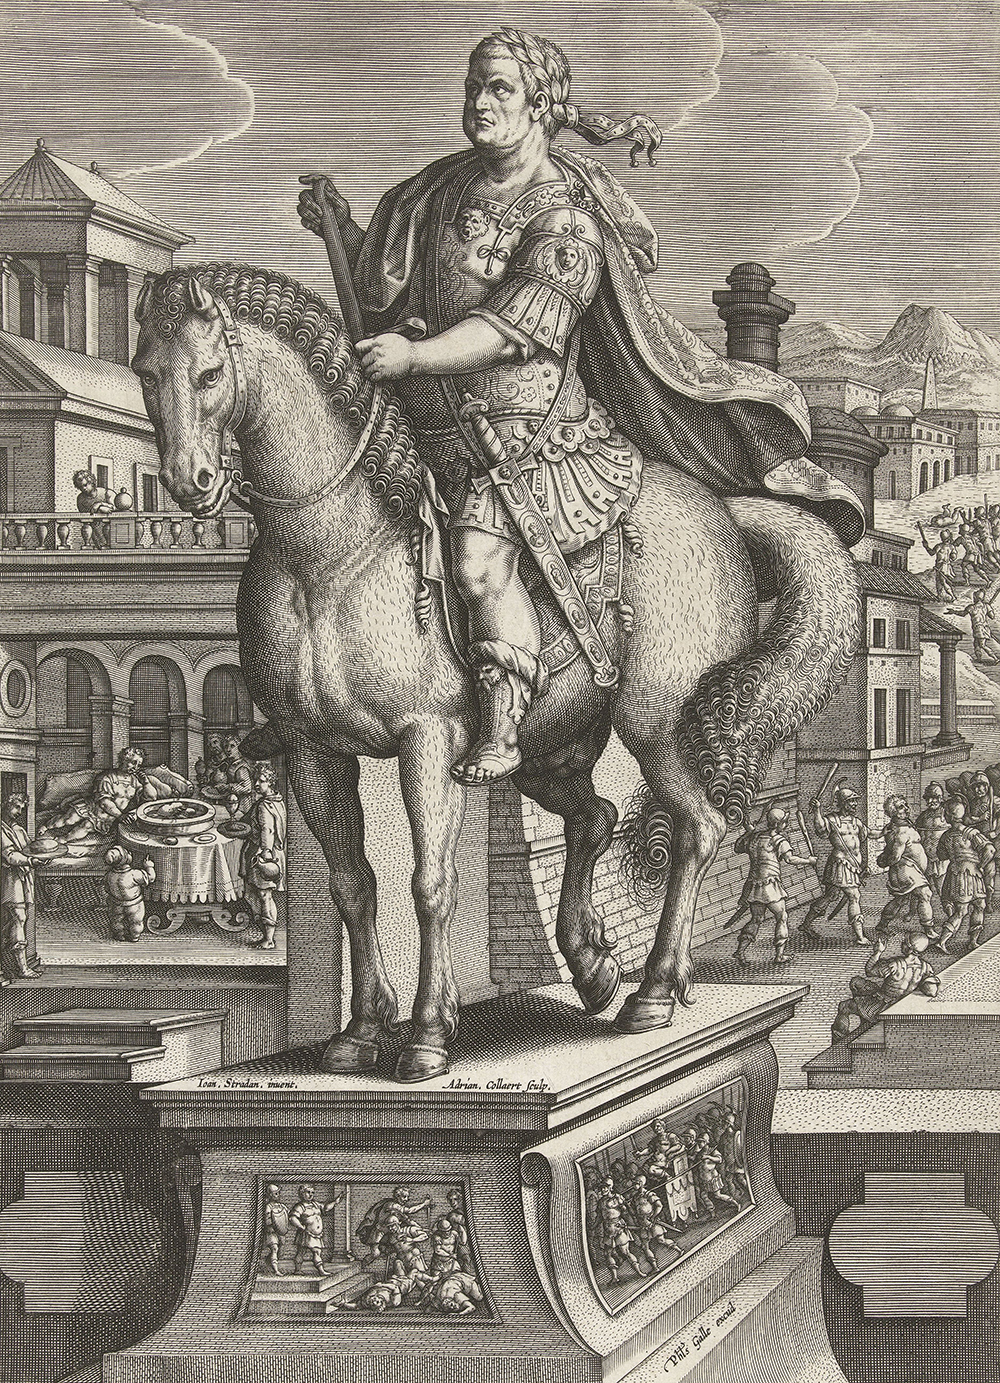 """Equestrian statue of Vitellius, with his death scene in the background at right, his body being thrown into the Tiber at upper right, from """"Roman Emperors on Horseback,"""" by Adriaen Collaert, c. 1587. Rijksmuseum."""